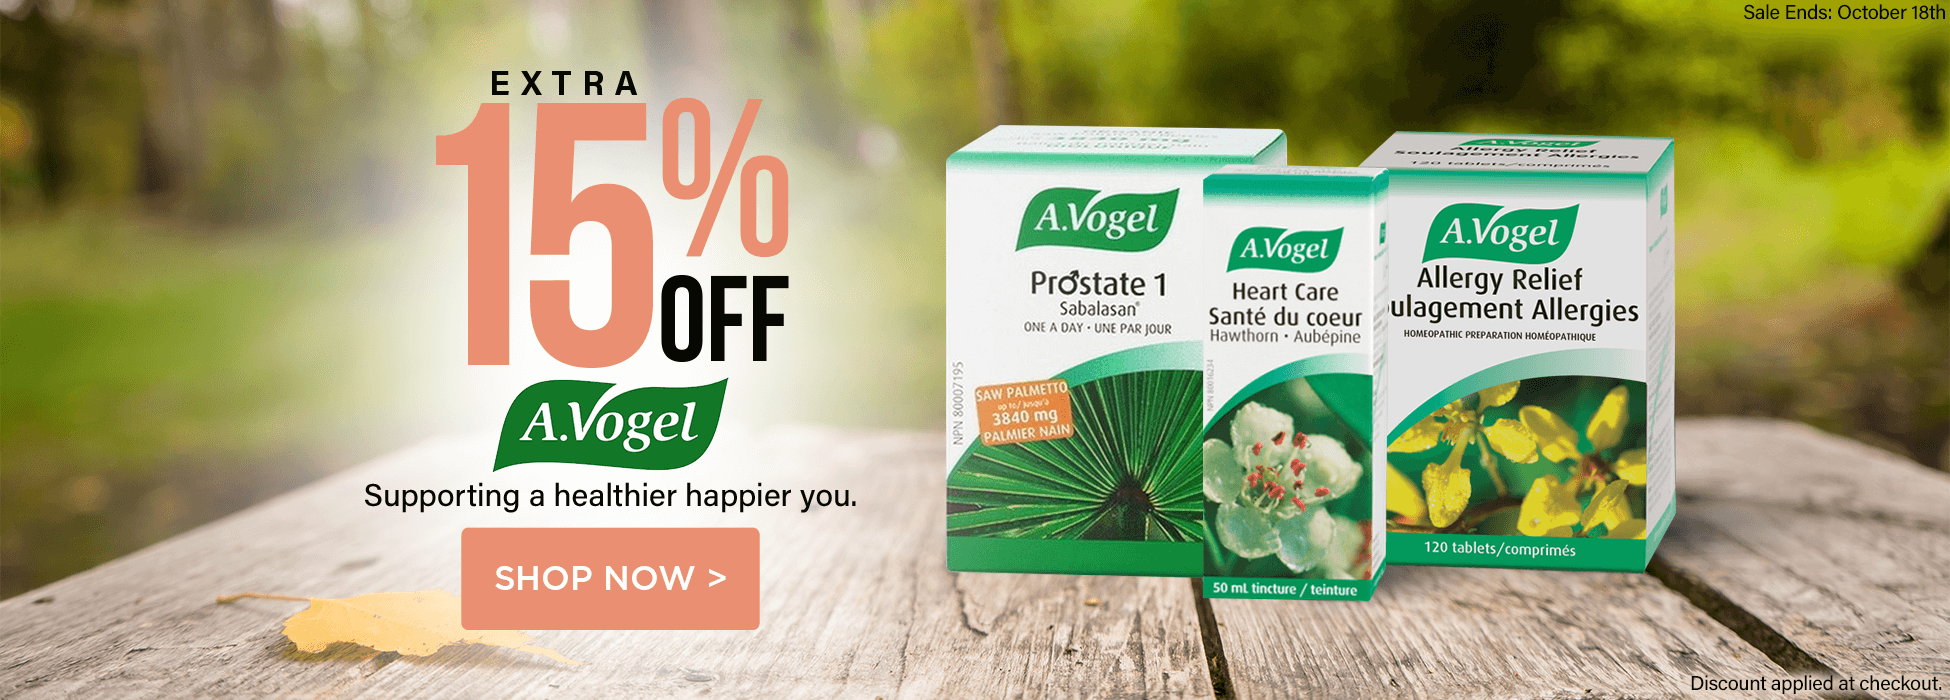 A. Vogel sale prostate supplement heart care, allergy relief